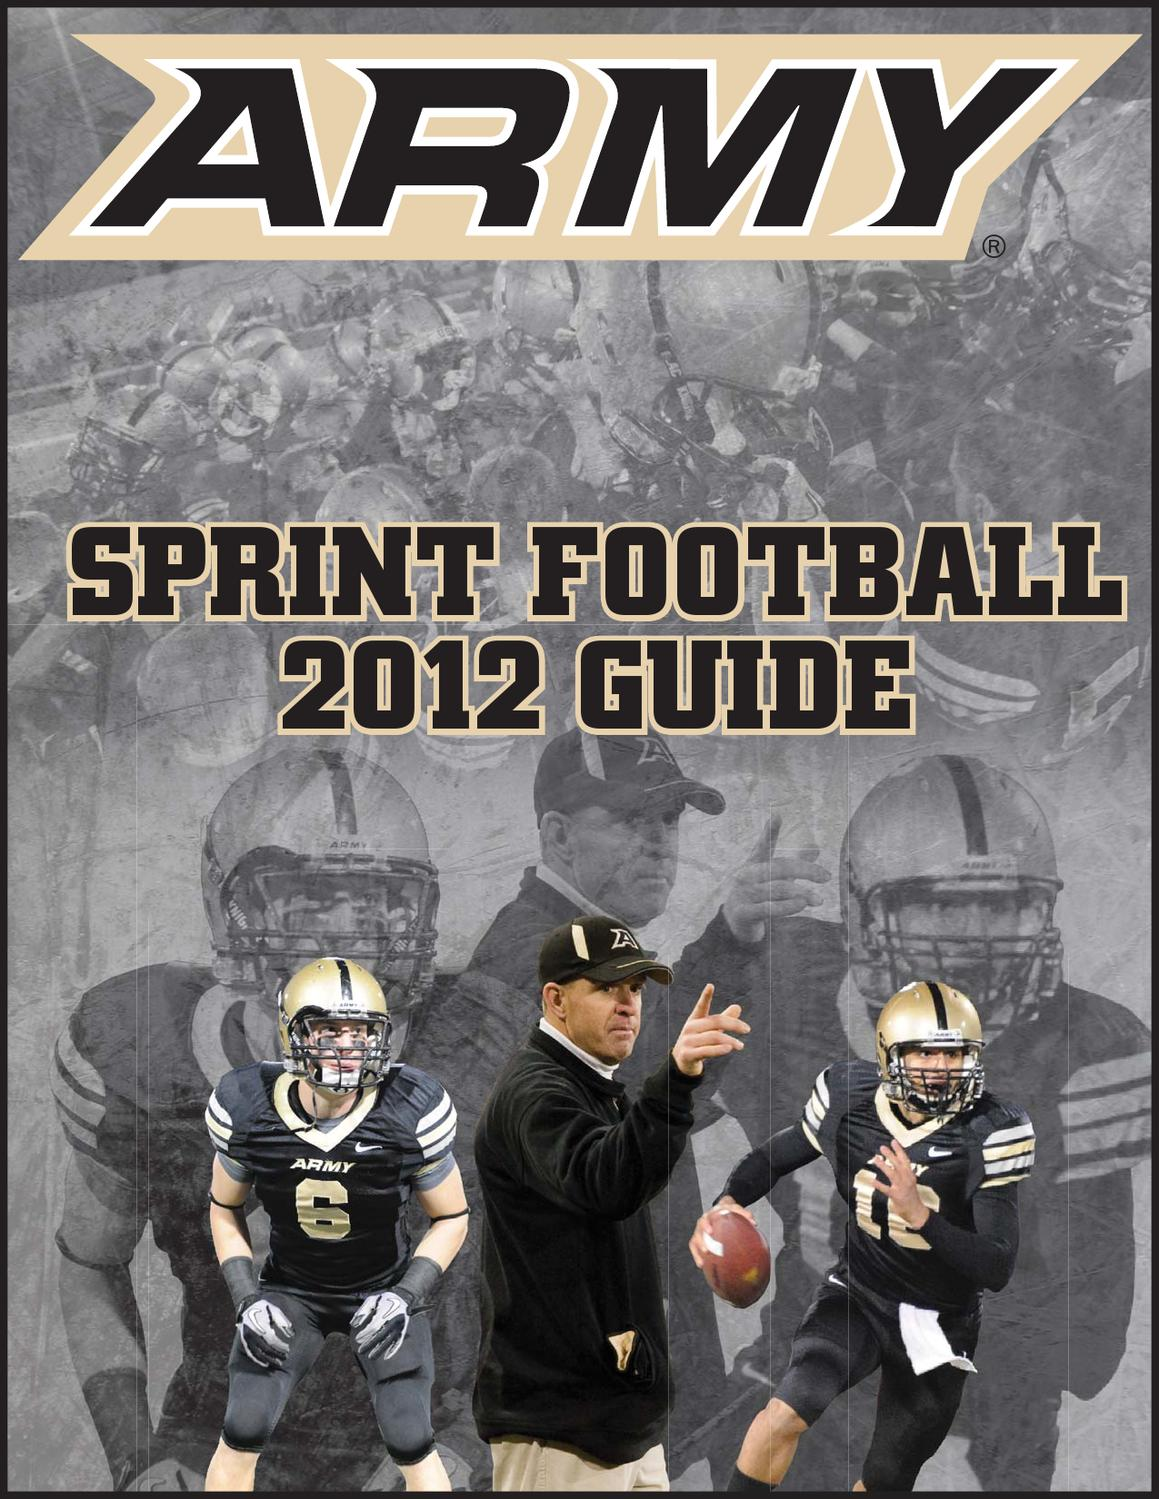 23d7979c4d05 2012 Sprint Football Guide by Army West Point Athletics - issuu